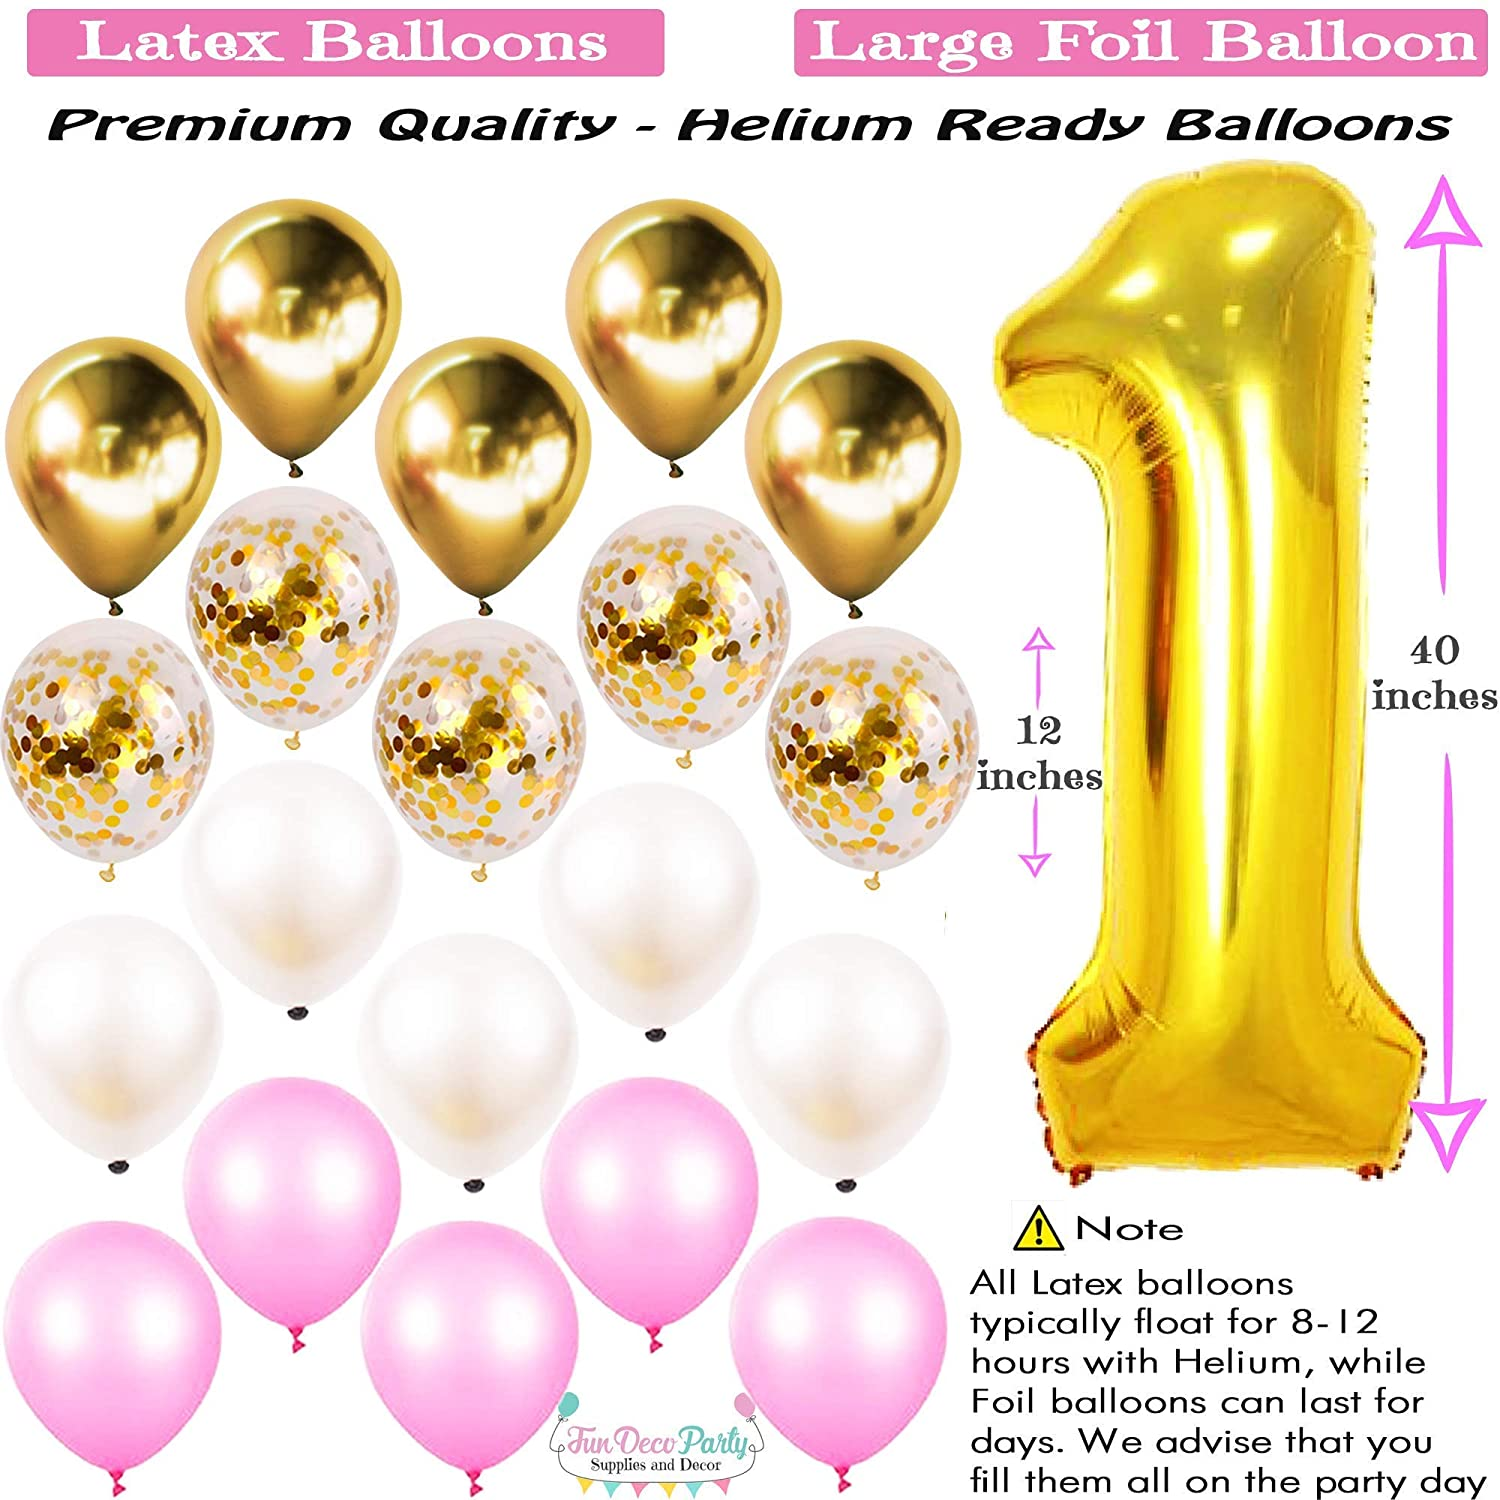 1 Year Cake Topper Happy Birthday Banner Number Mylar Balloon 1st Birthday Girl Decorations Party Supplies Set Princess First Pink n Gold Girls Theme Kit Paper Decor Latex and Metallic Balloons